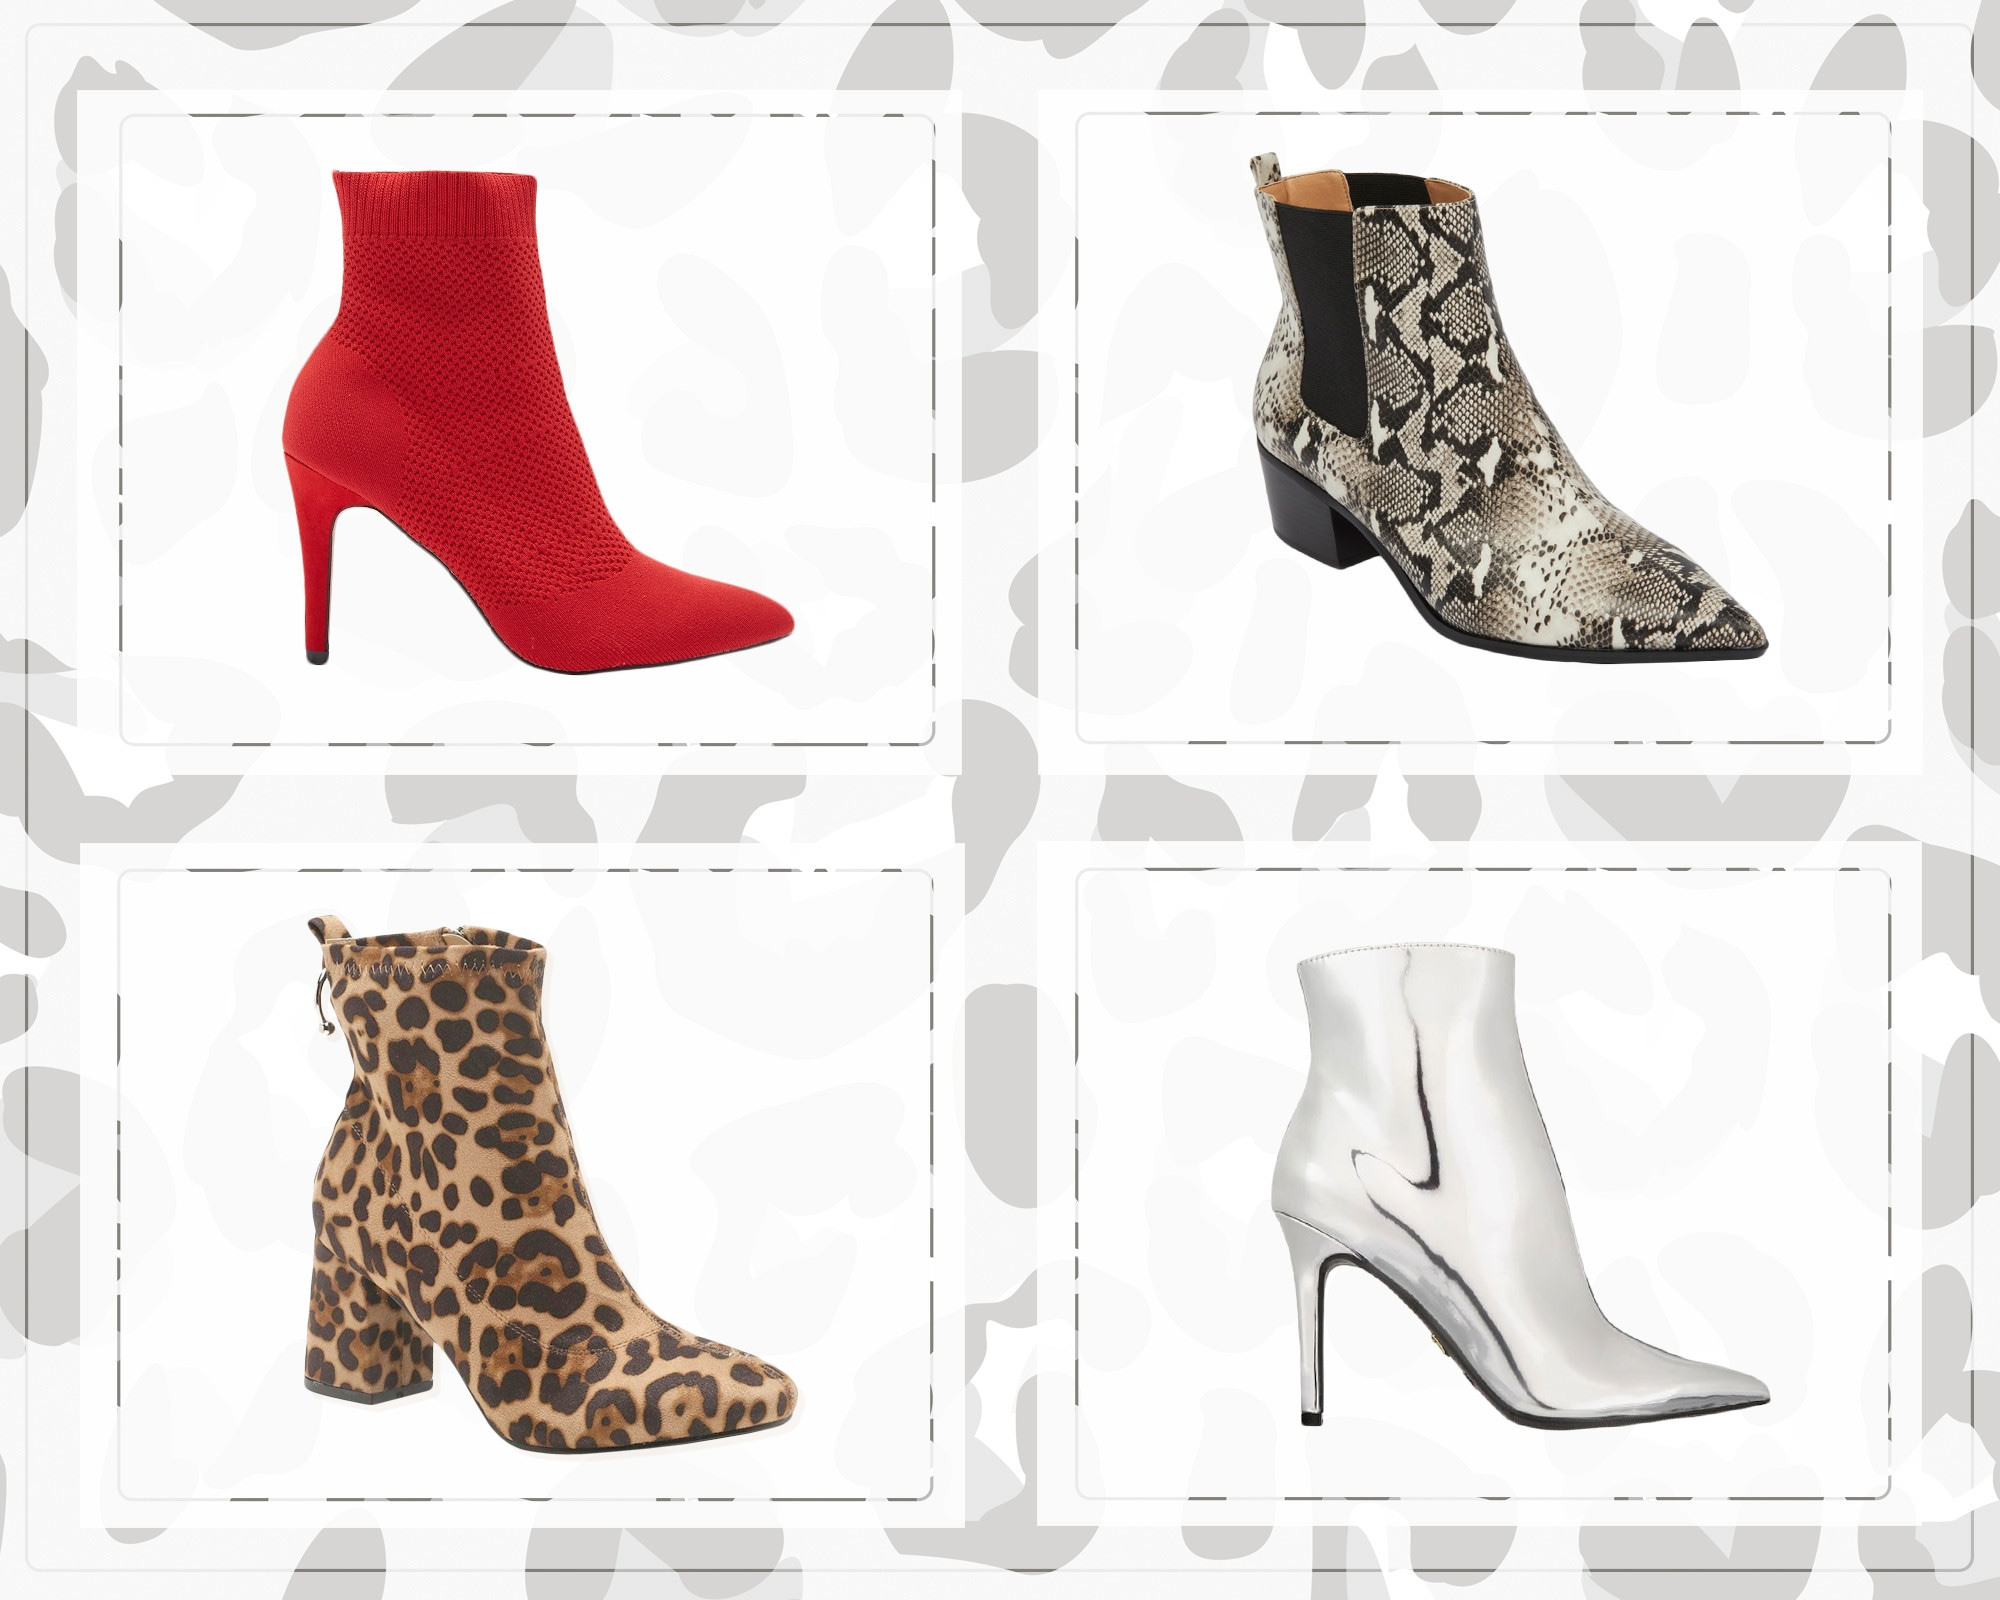 E-comm: Look For Less Boots Under $50